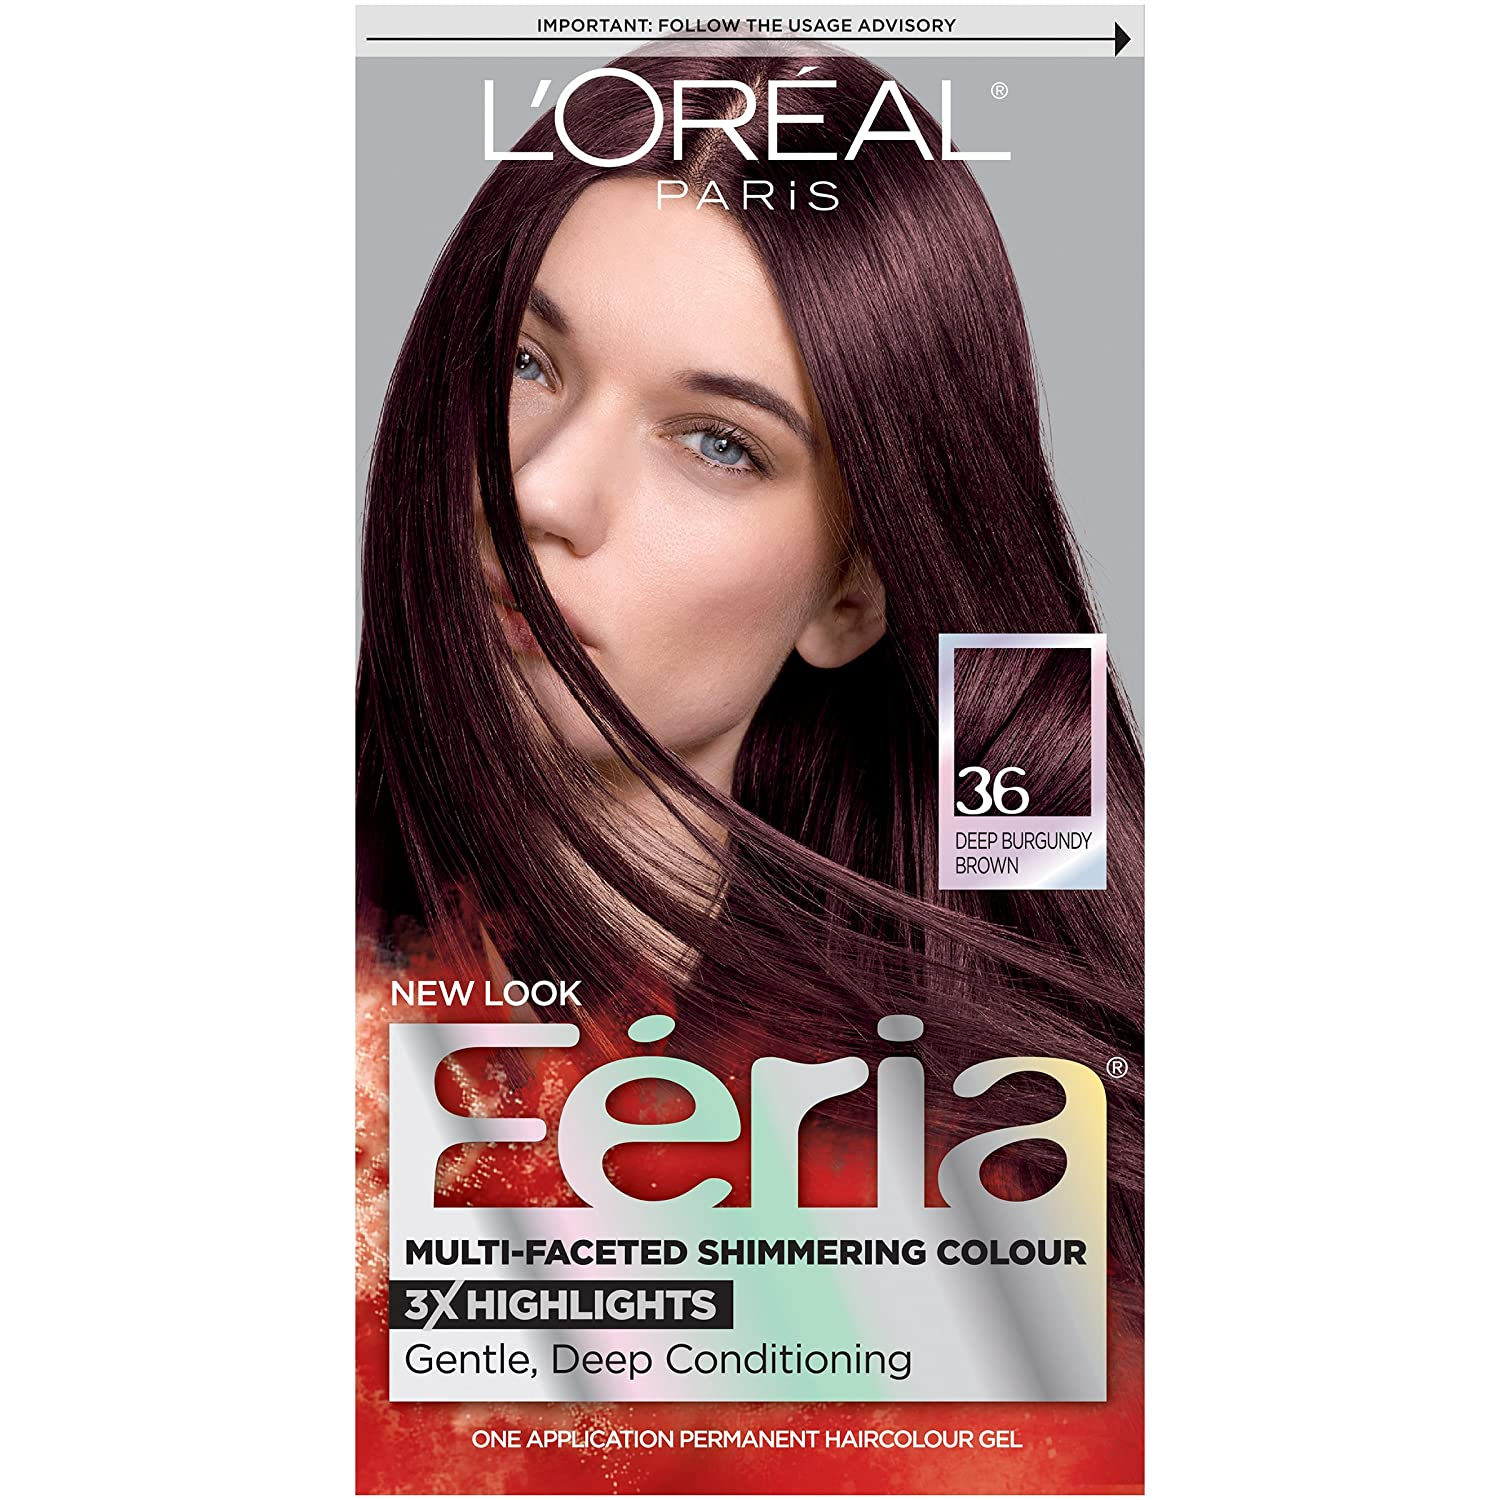 Buy Loreal Feria Haircolor Chocolate Cherry 36 1 Online At Low